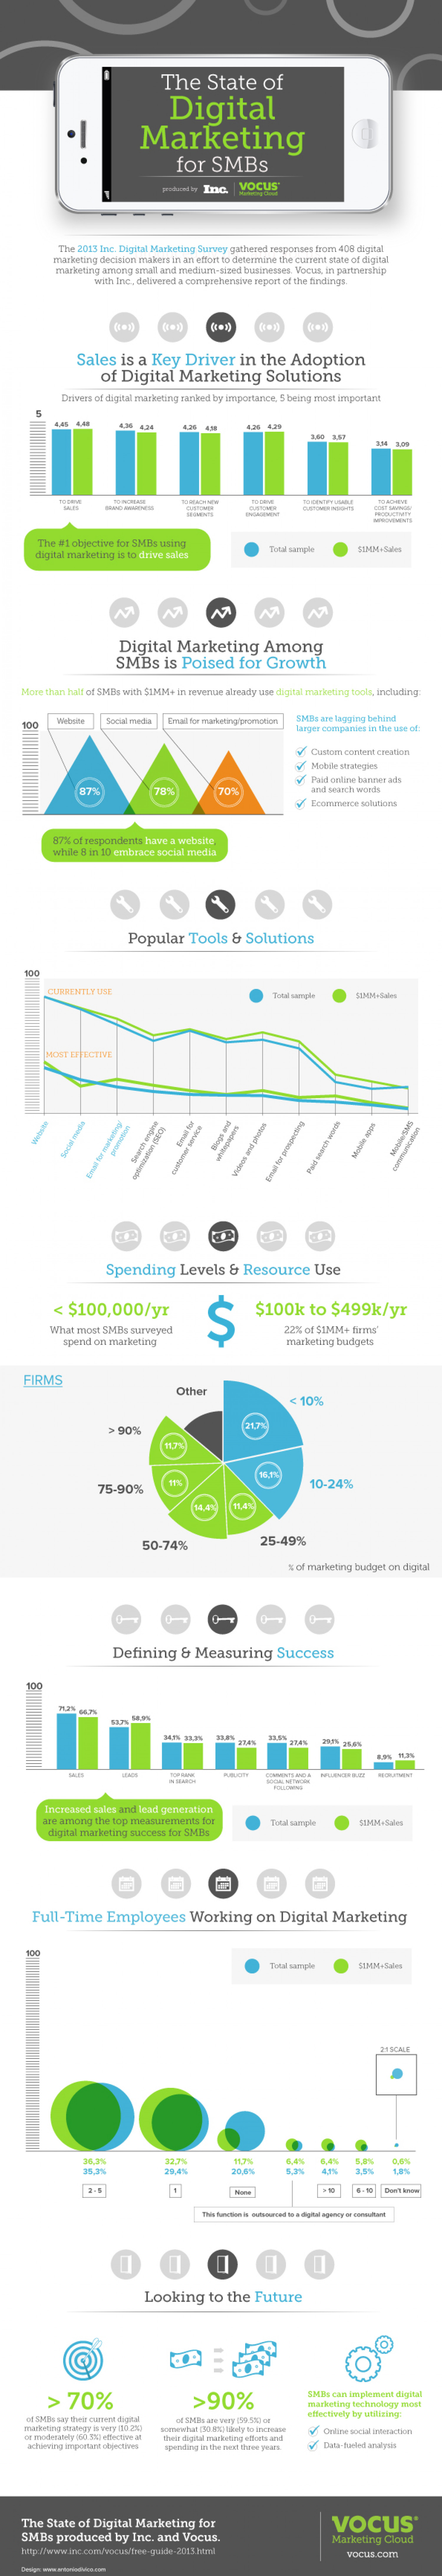 The State of Digital Marketing for SMBs Infographic